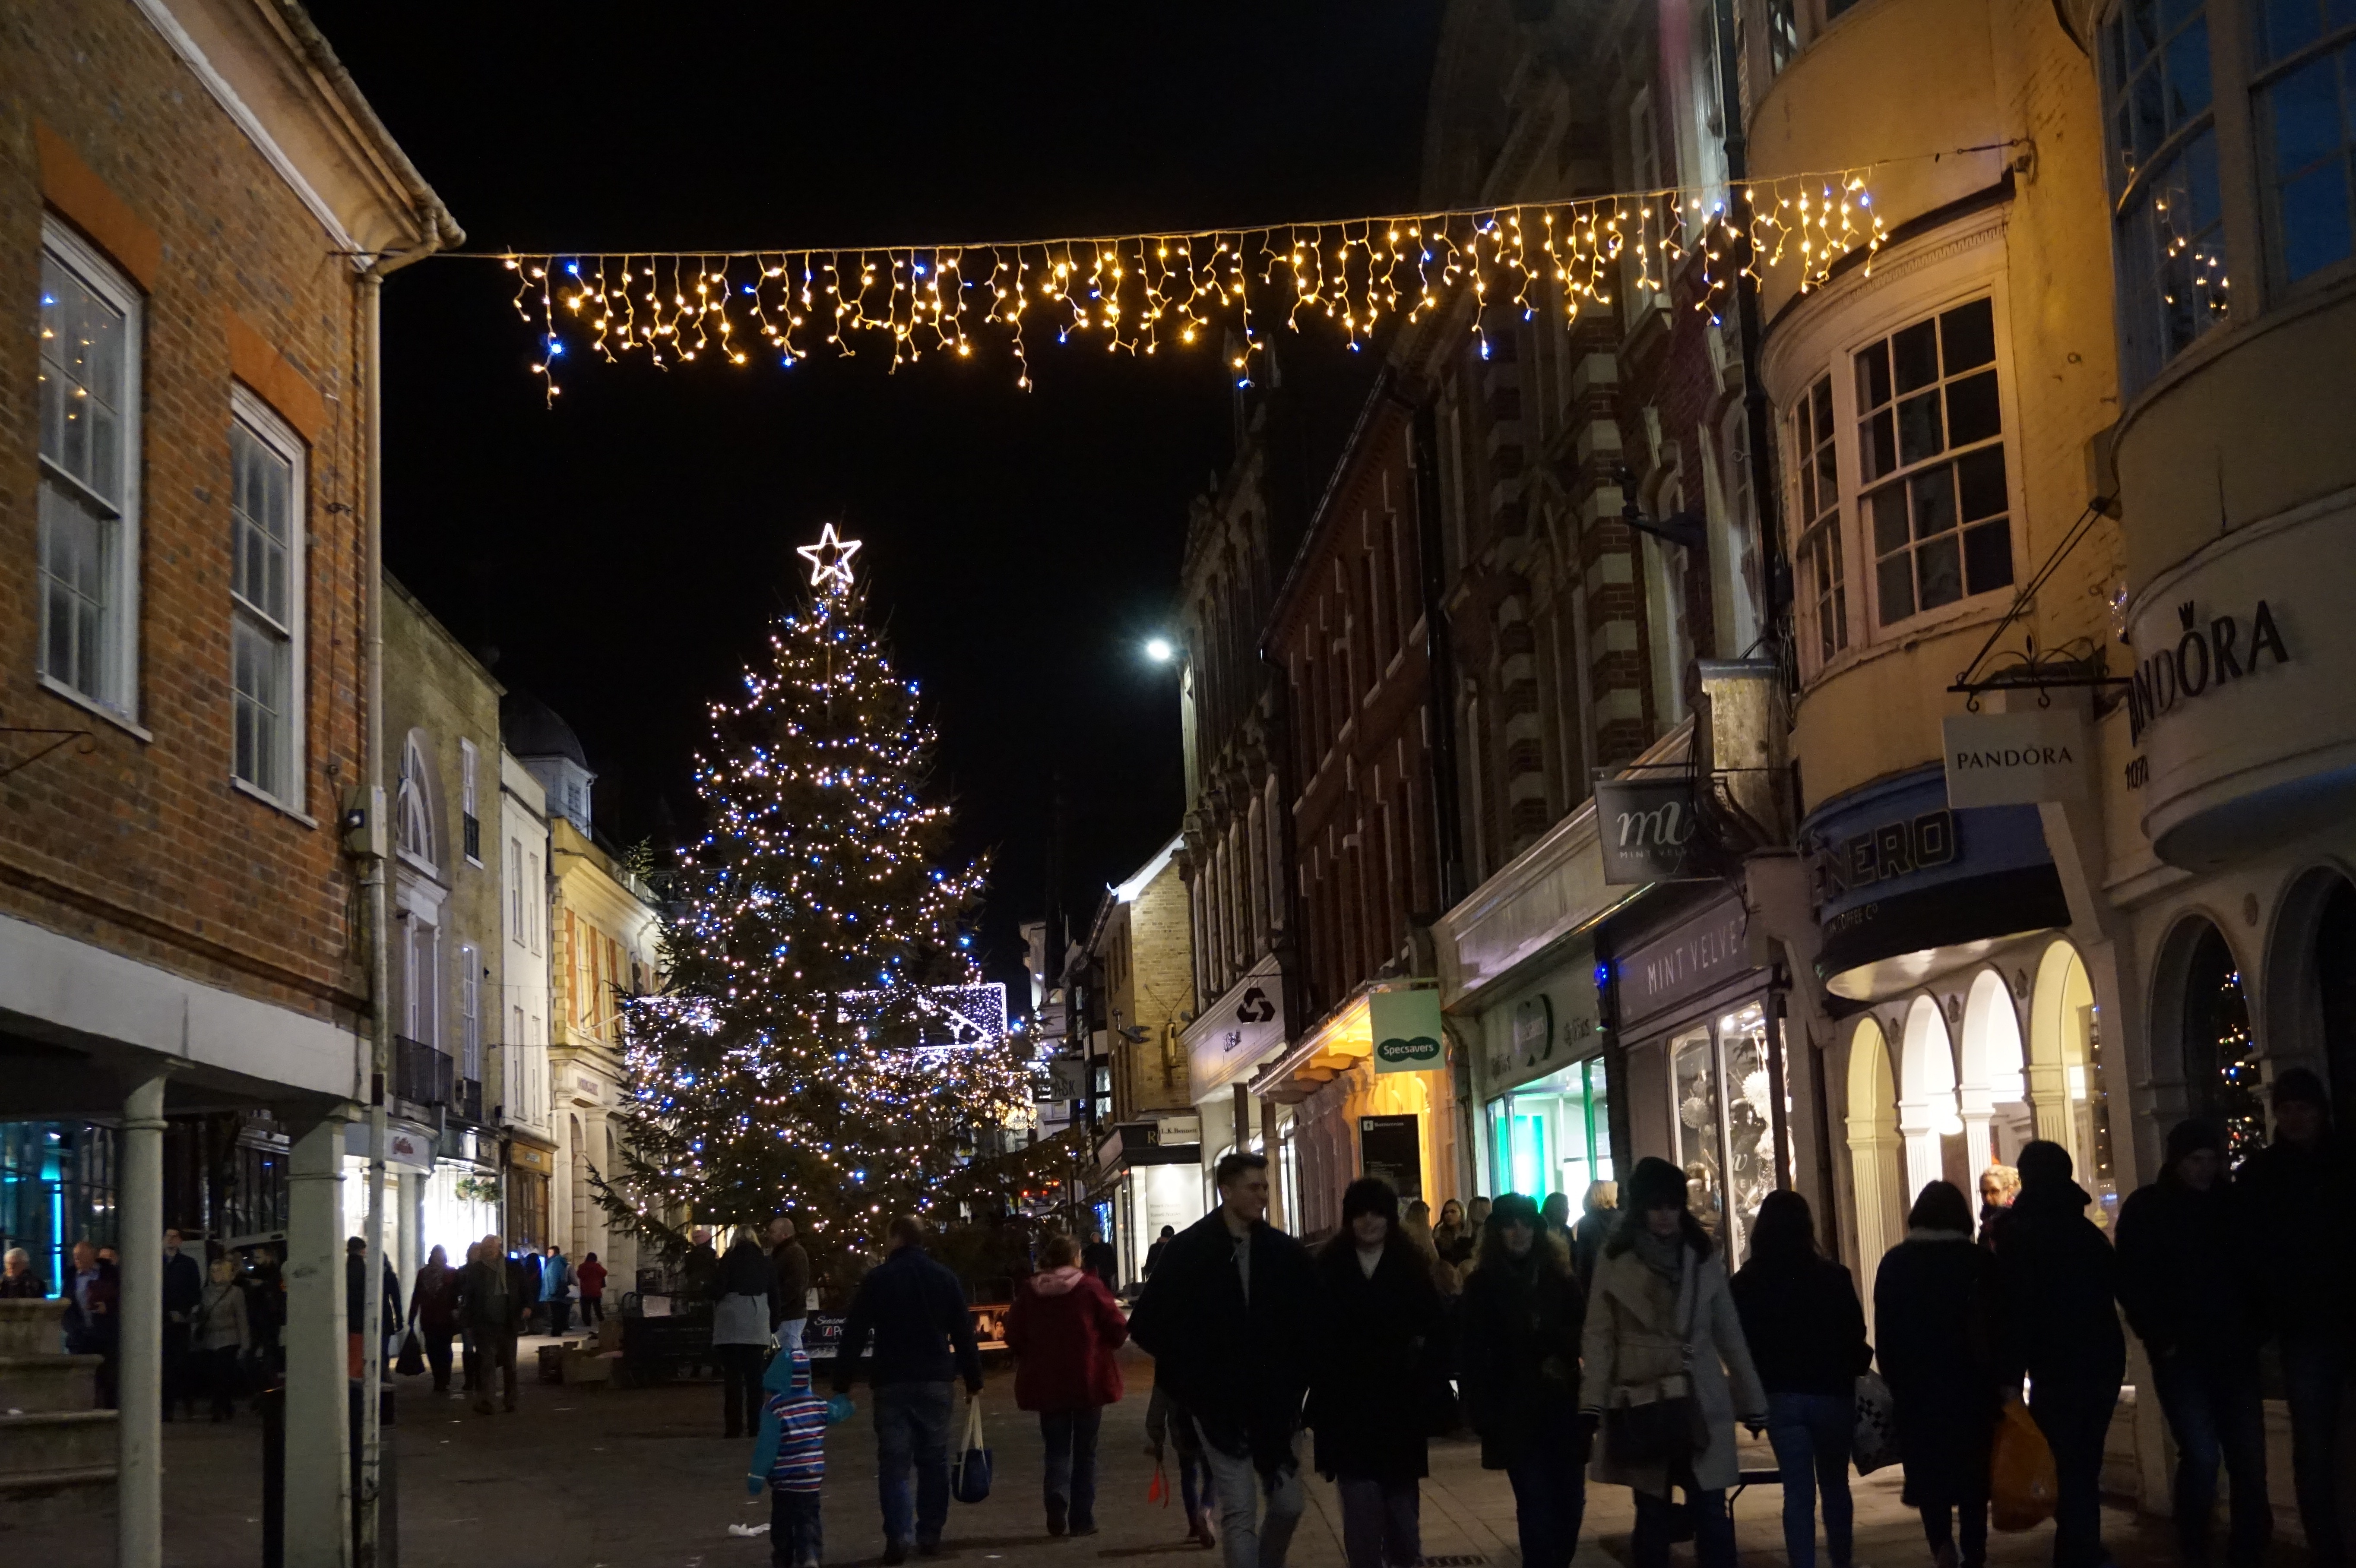 Shoppers walk along a street at night with a large Christmas tree in the distance at a Christmas market in England